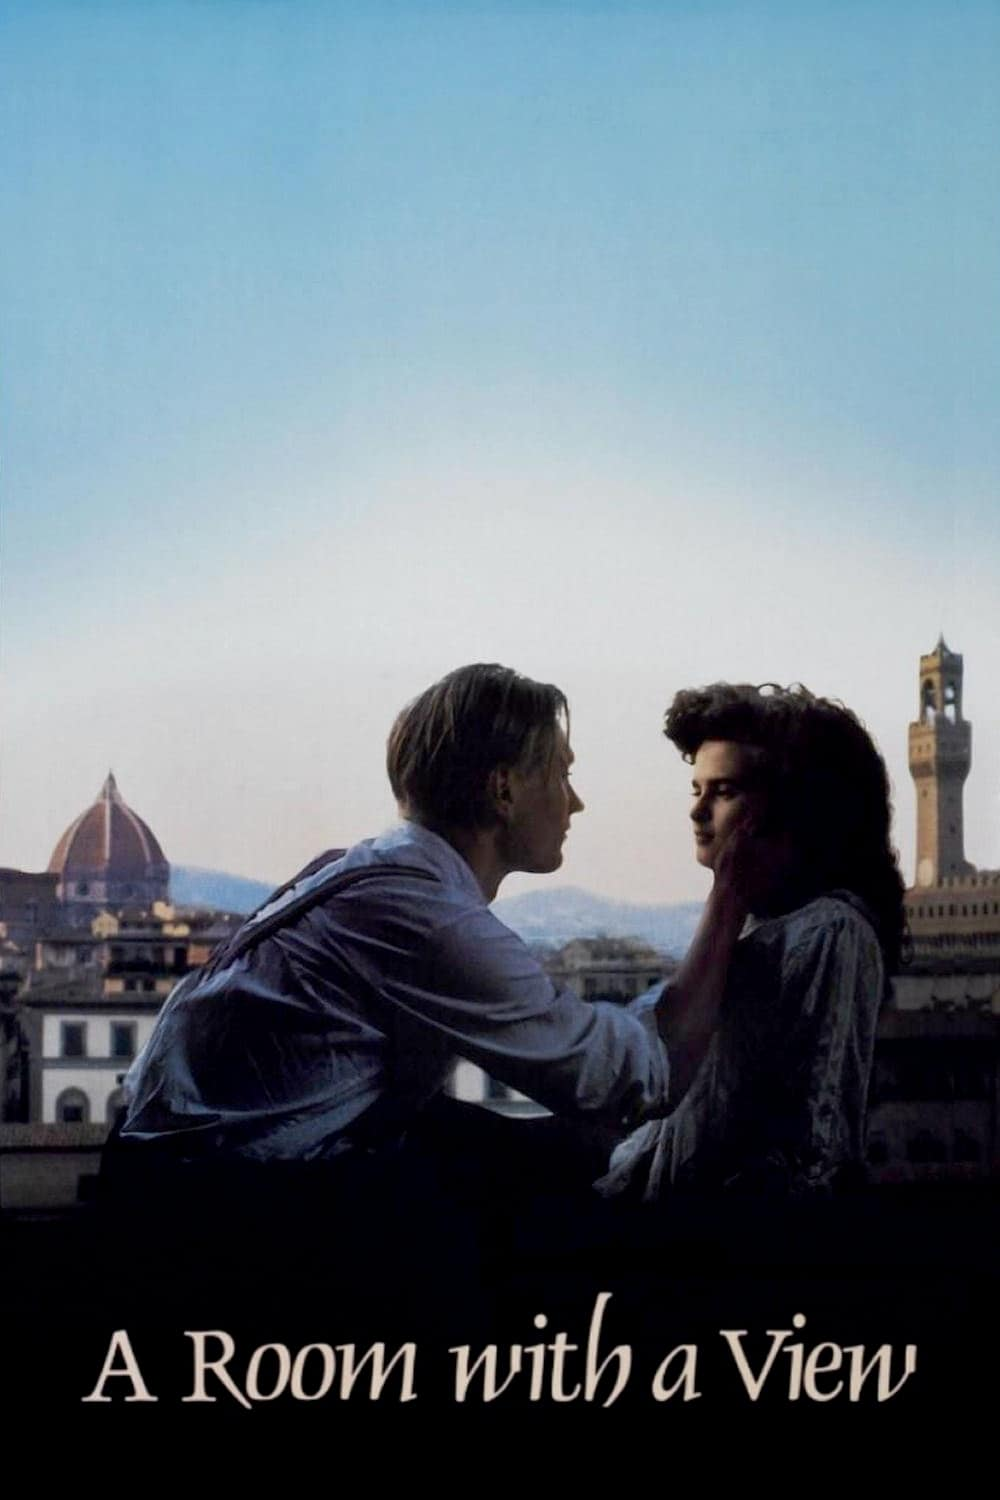 A Room with a View, 1985